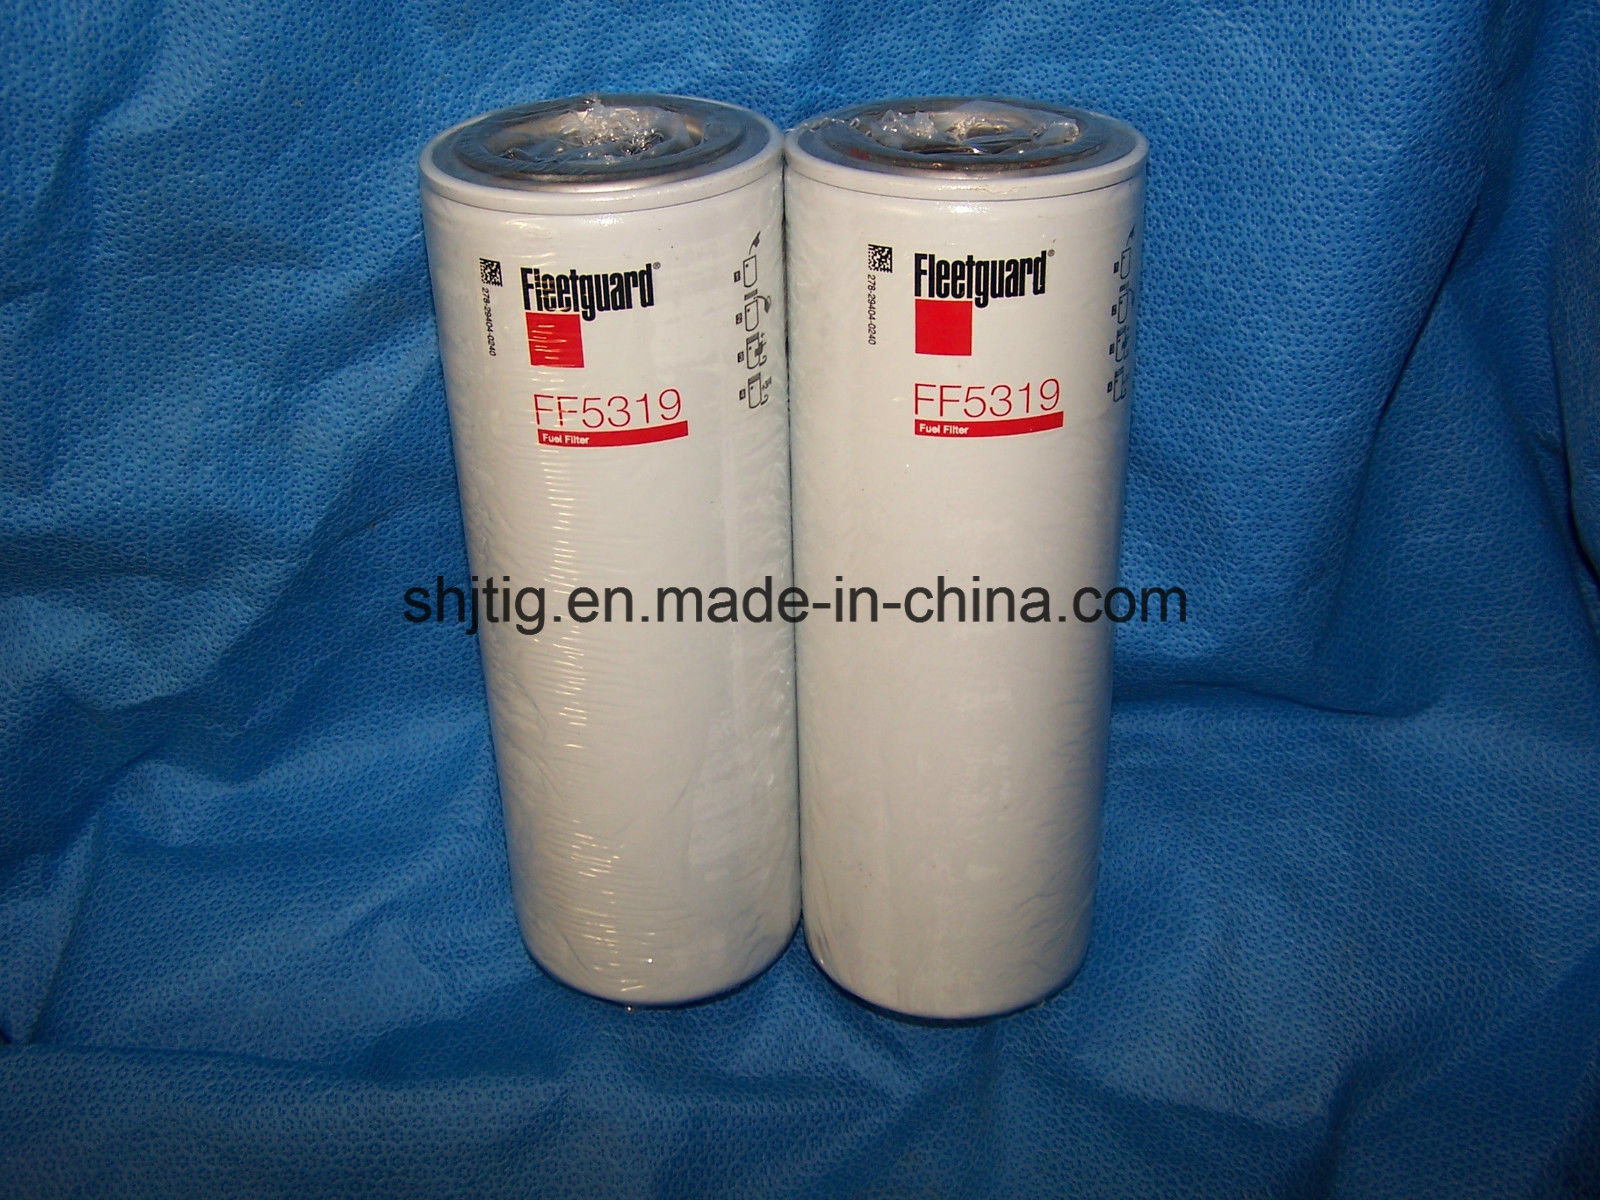 China FF5319 Fuel Spin-on Filter Fits: Caterpillar 1r0749, Equipment; Ford,  Freightliner, International, Kenworth, Peterbilt, Sterling, Western Star  Trucks - China Fuel Filter, Oil FilterShanghai J&T International Group Co., Ltd.